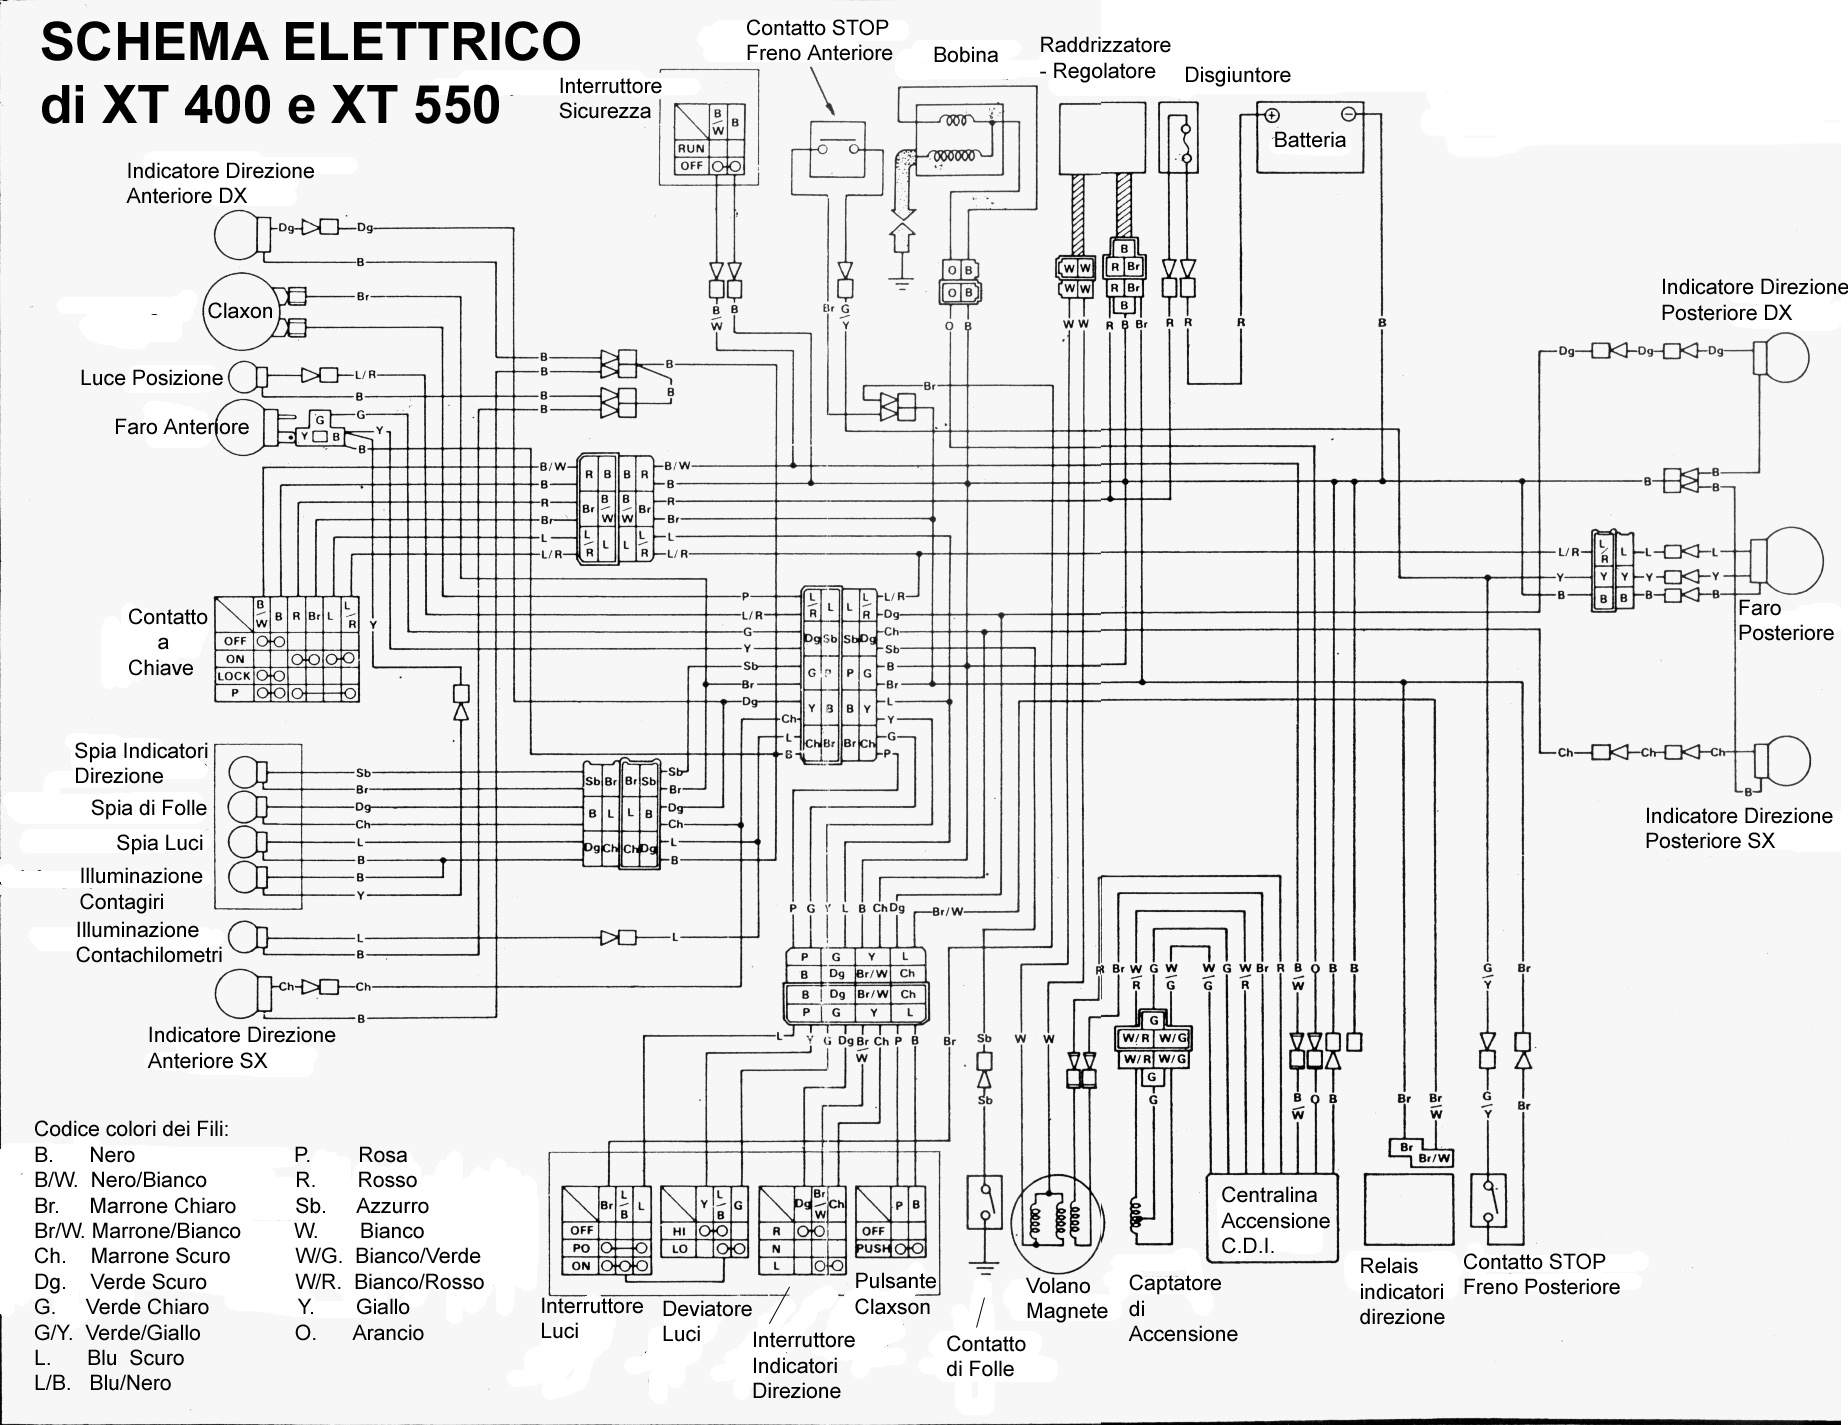 schema elettrico XT550 trane xt500c wiring diagram trane heat pumps thermostat wiring trane xt500c wiring diagram at eliteediting.co